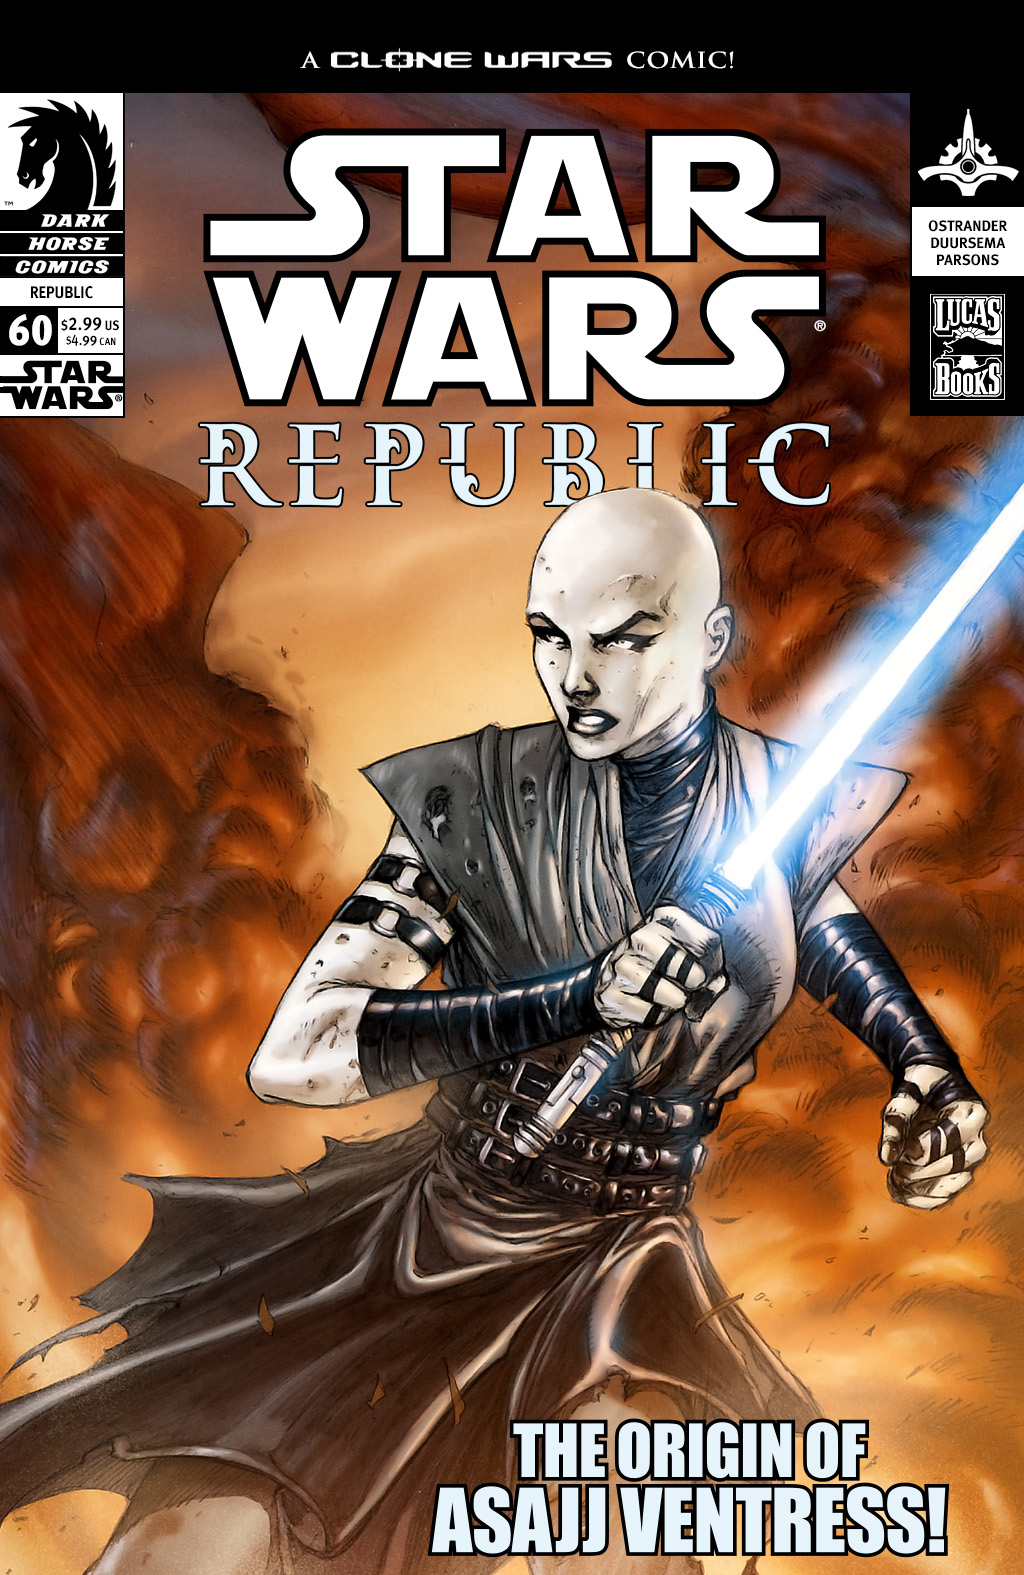 Star Wars: Republic 60 Page 1